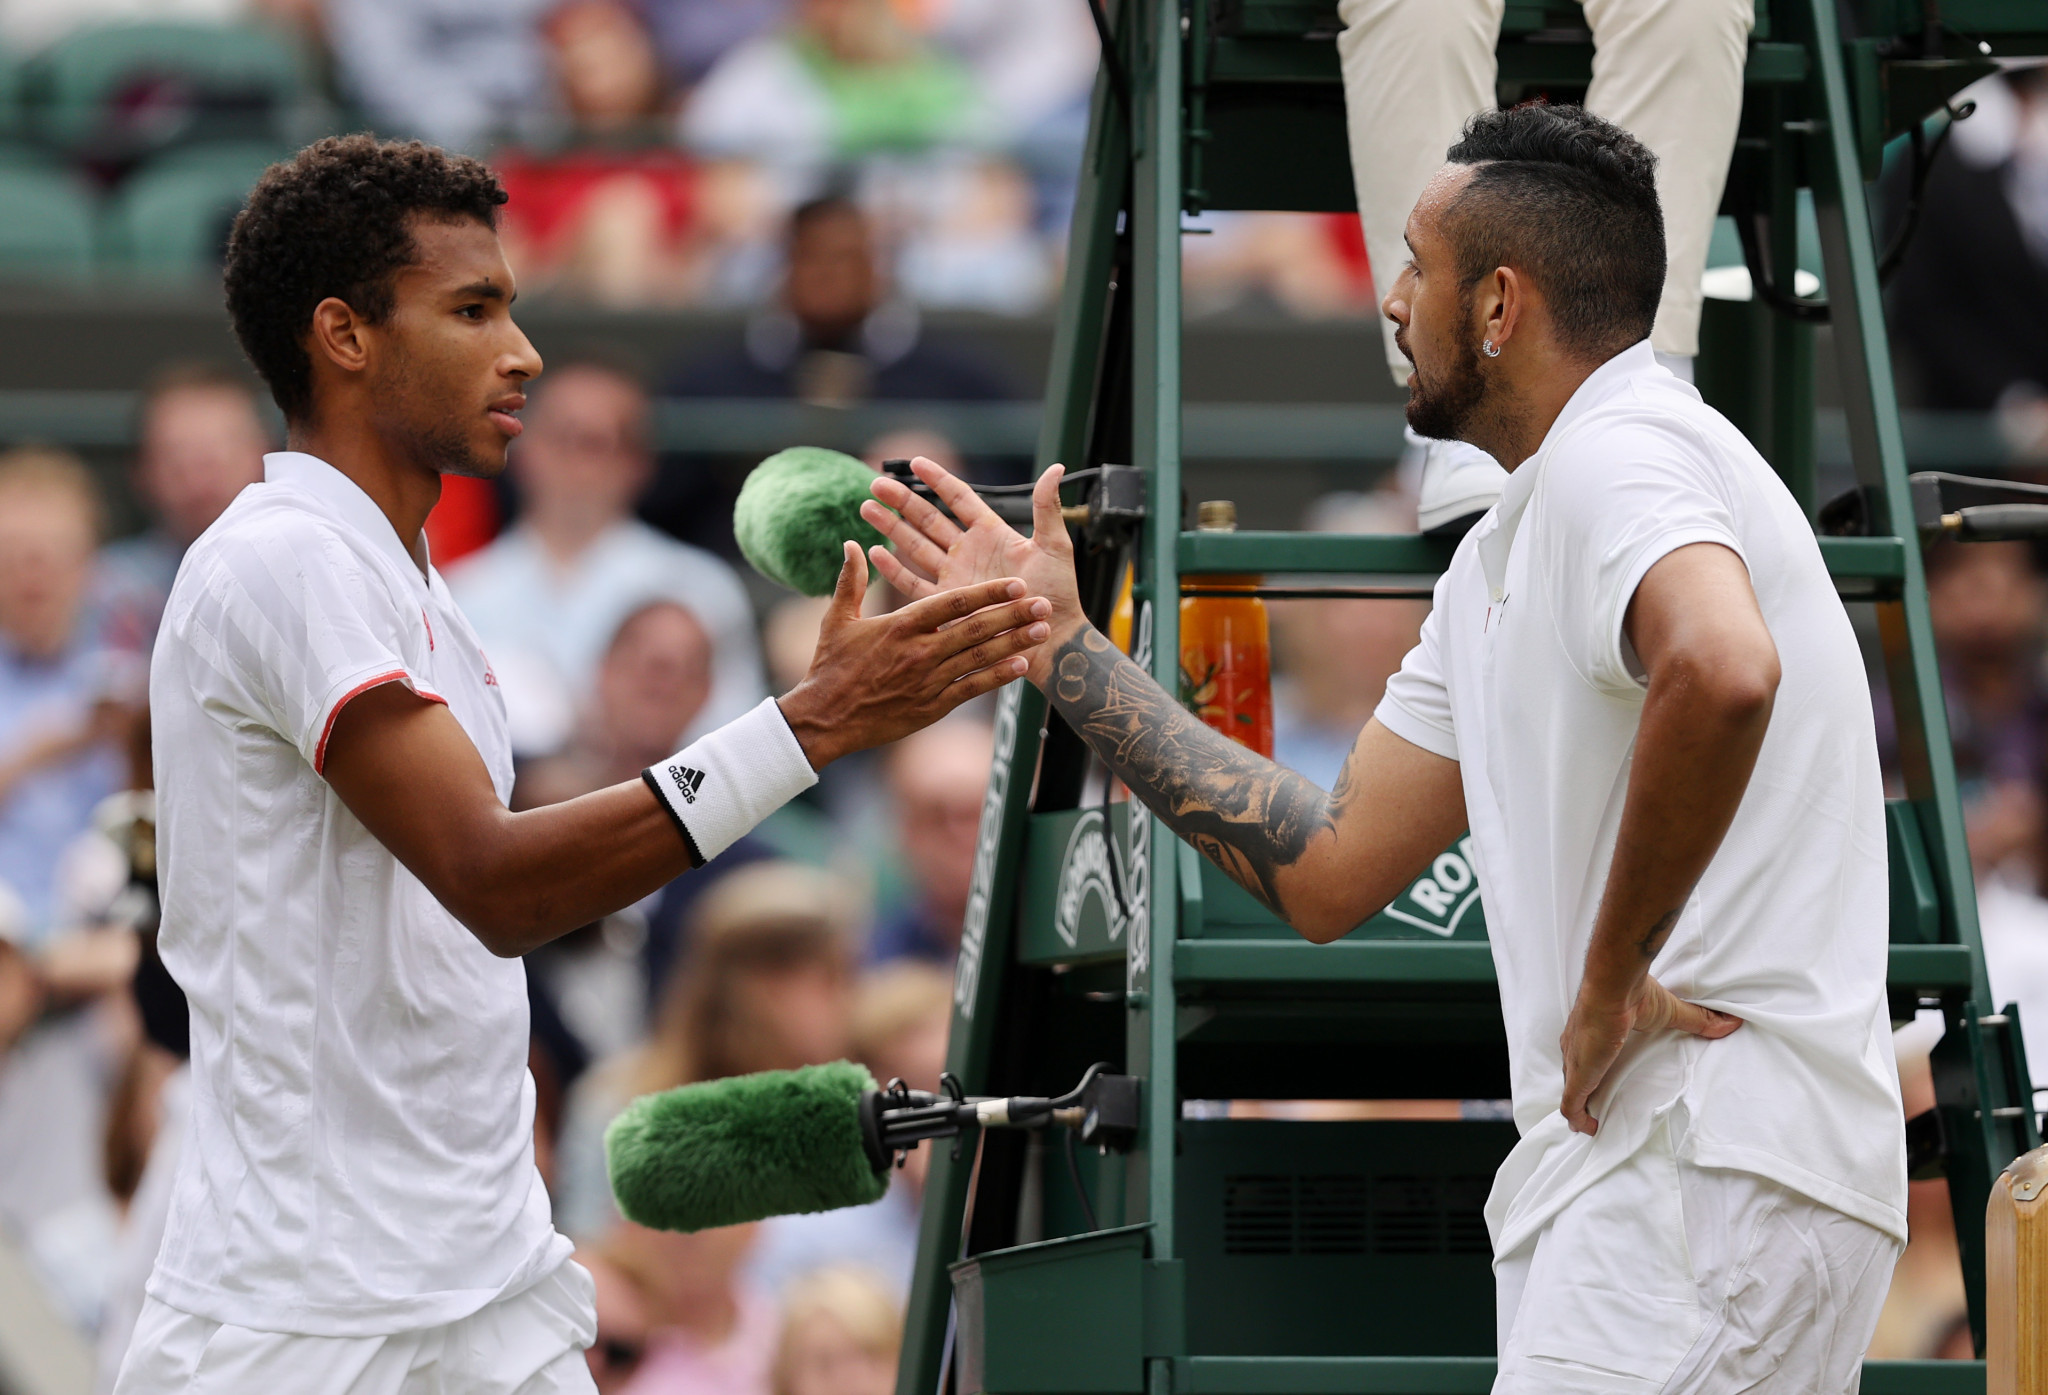 Nick Kyrgios, right, retired hurt in his third-round match against Canadian Felix Auger-Aliassime at Wimbledon ©Getty Images